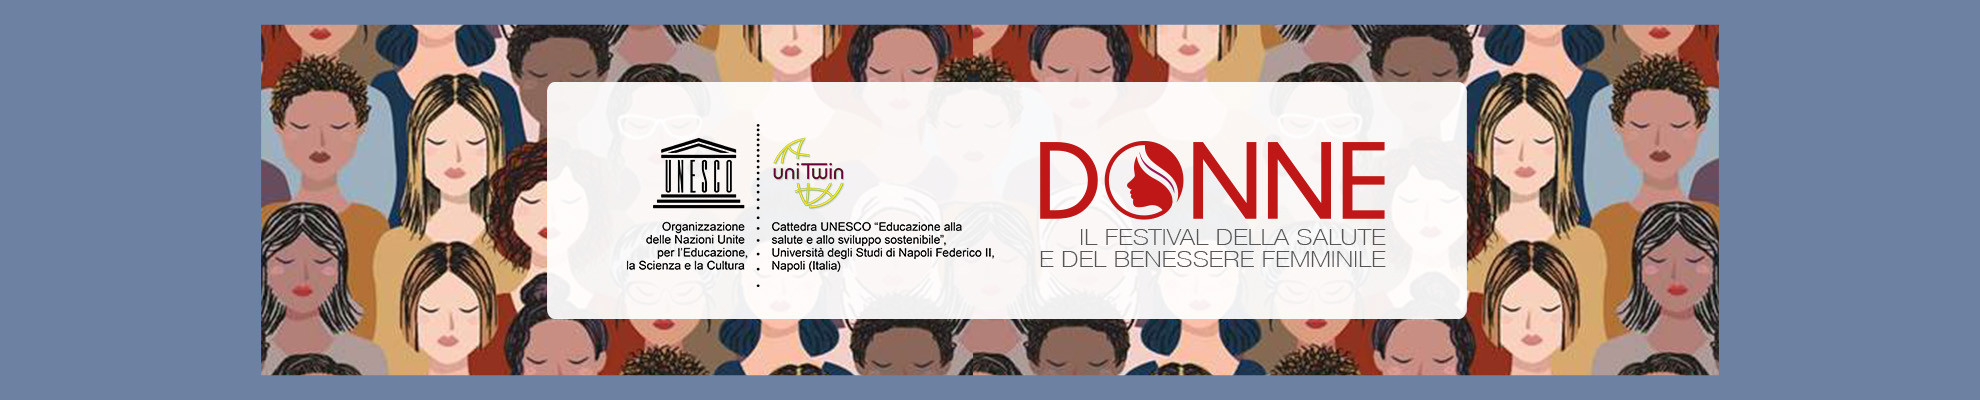 IBSA supports the Project Donne: the festival of women's health and well-being with the Unesco Chair - Federico II University of Naples